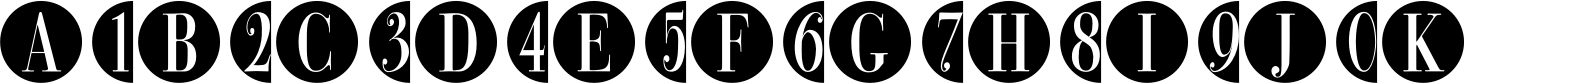 Bullet Numbers Bodoni Cond Neg Font